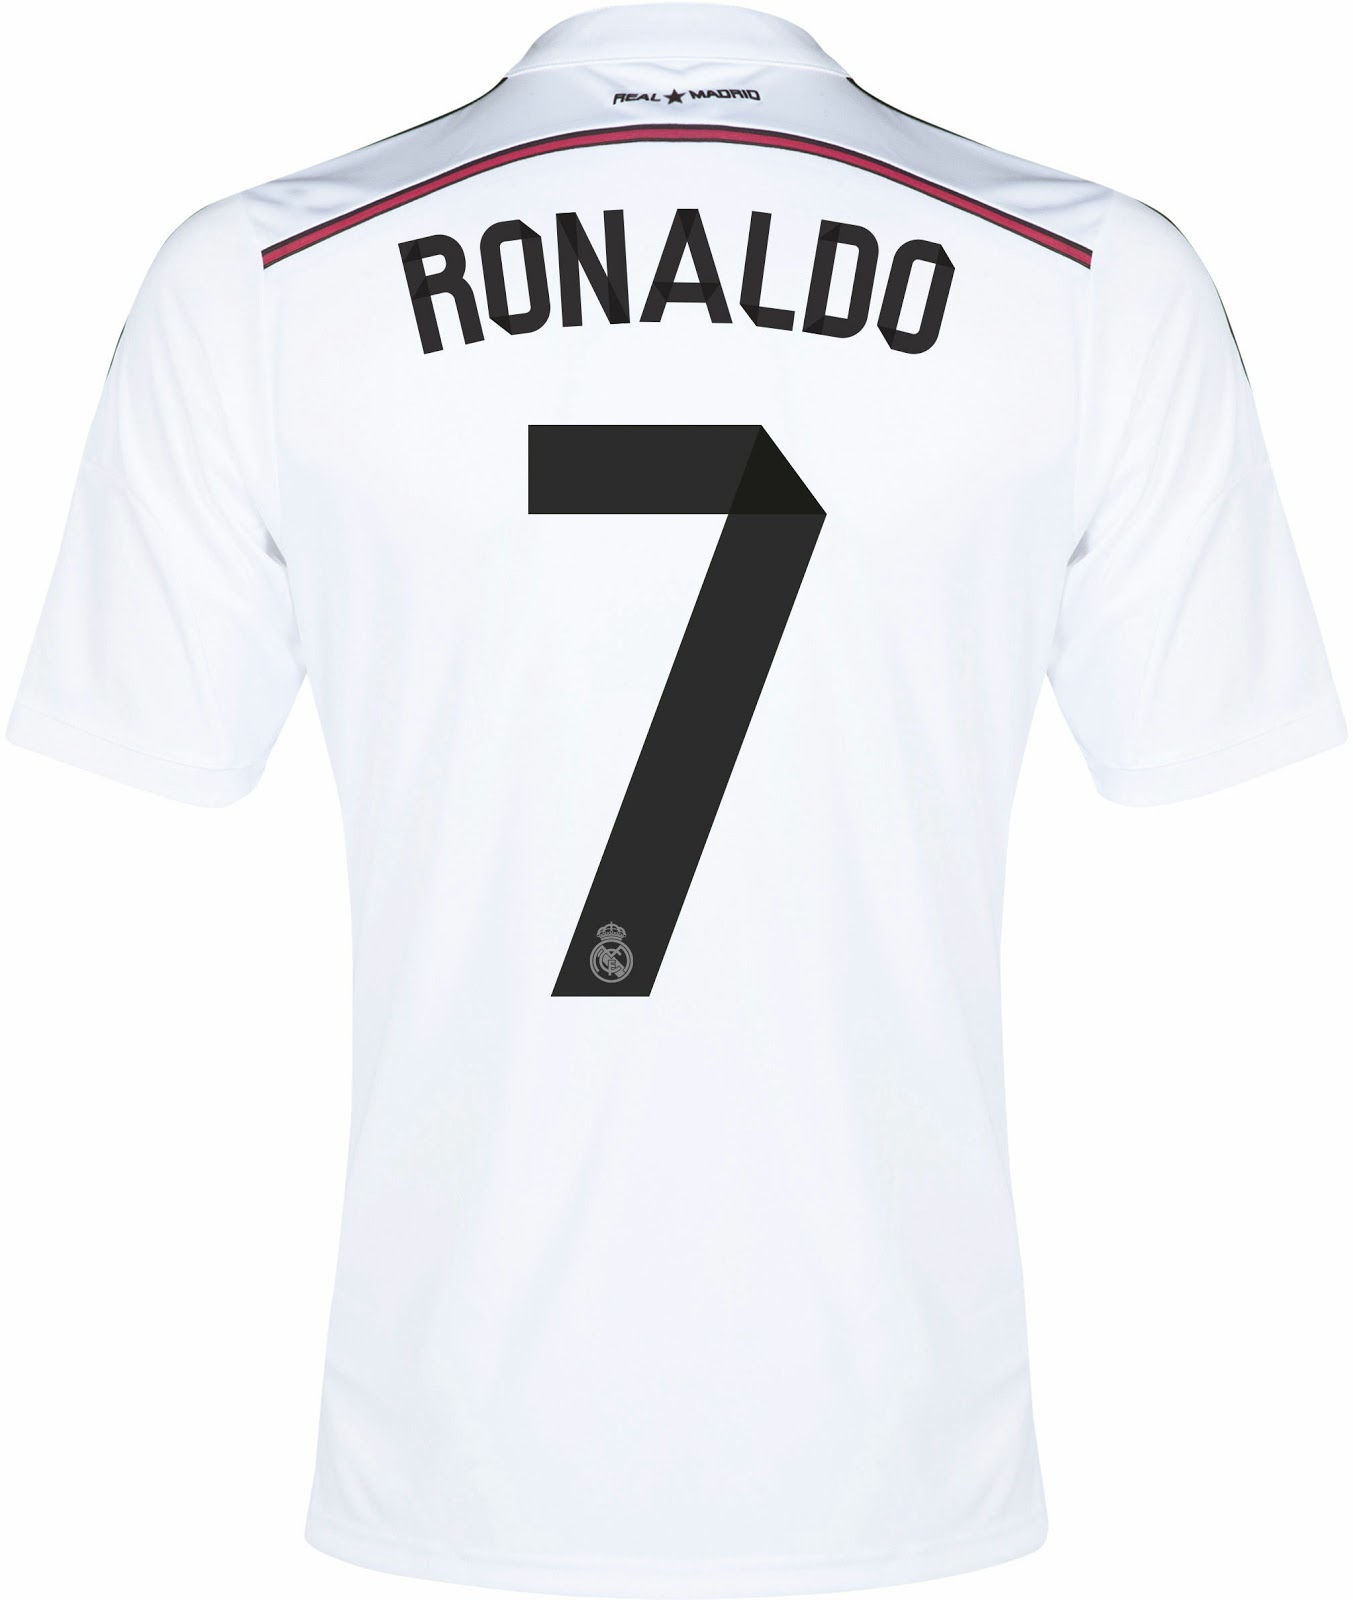 Real Madrid Players Jersey Numbers Real Madrid Players Jersey